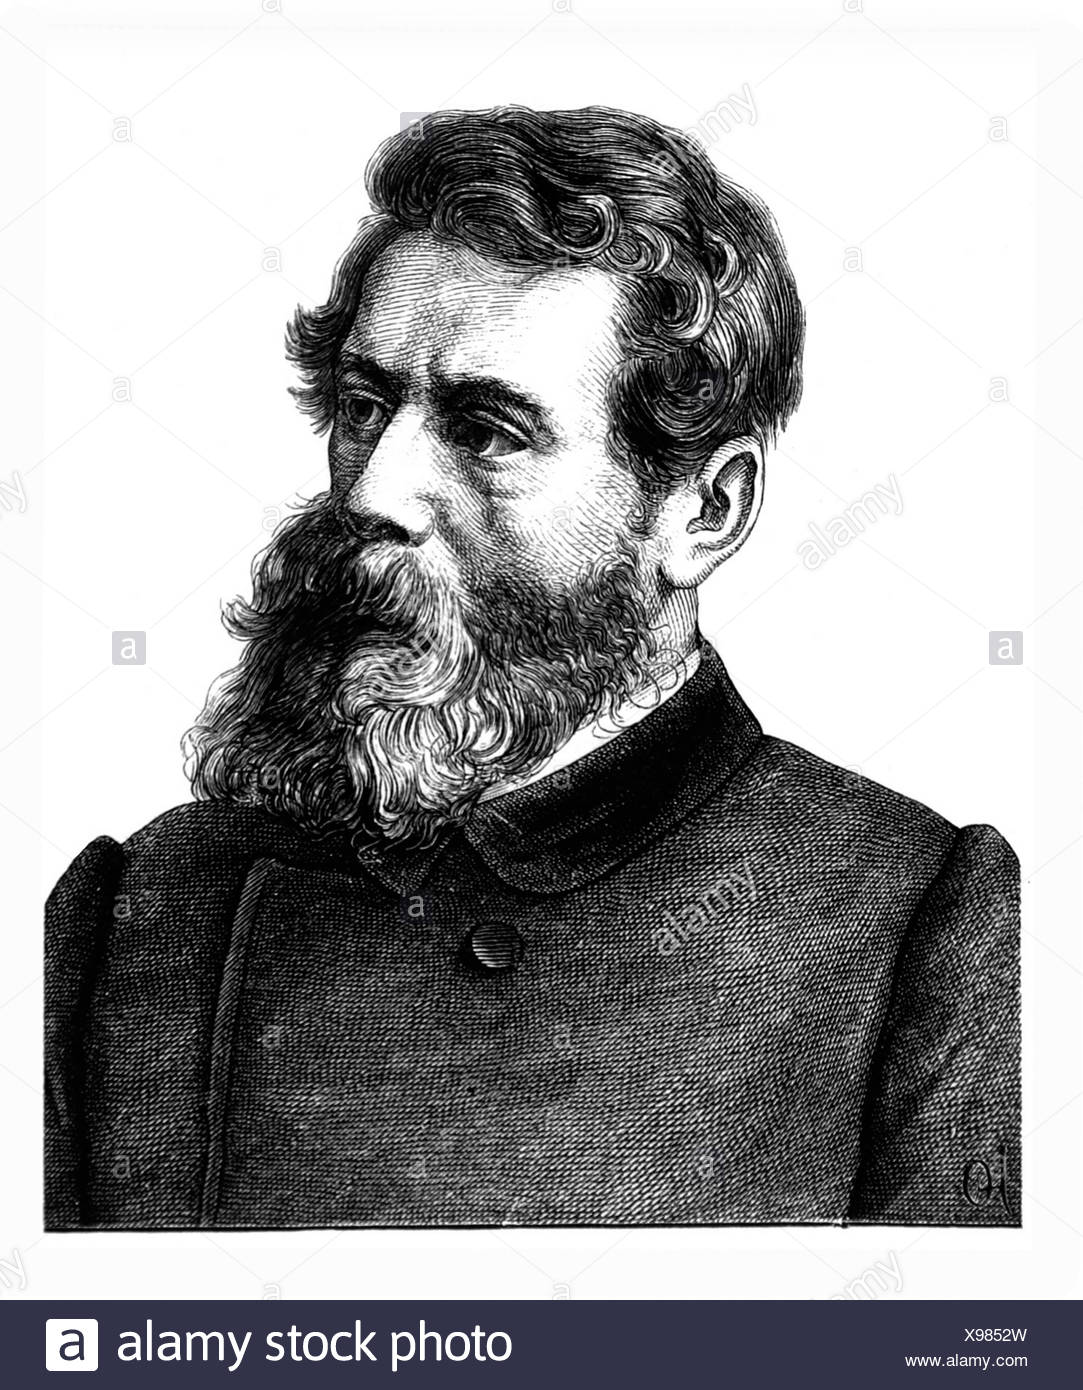 Feuerbach, Ludwig, 28.7.1804 - 13.9.1872, German philosopher, portrait, steel engraving, 19th century, , Artist's Copyright has not to be cleared - Stock Image